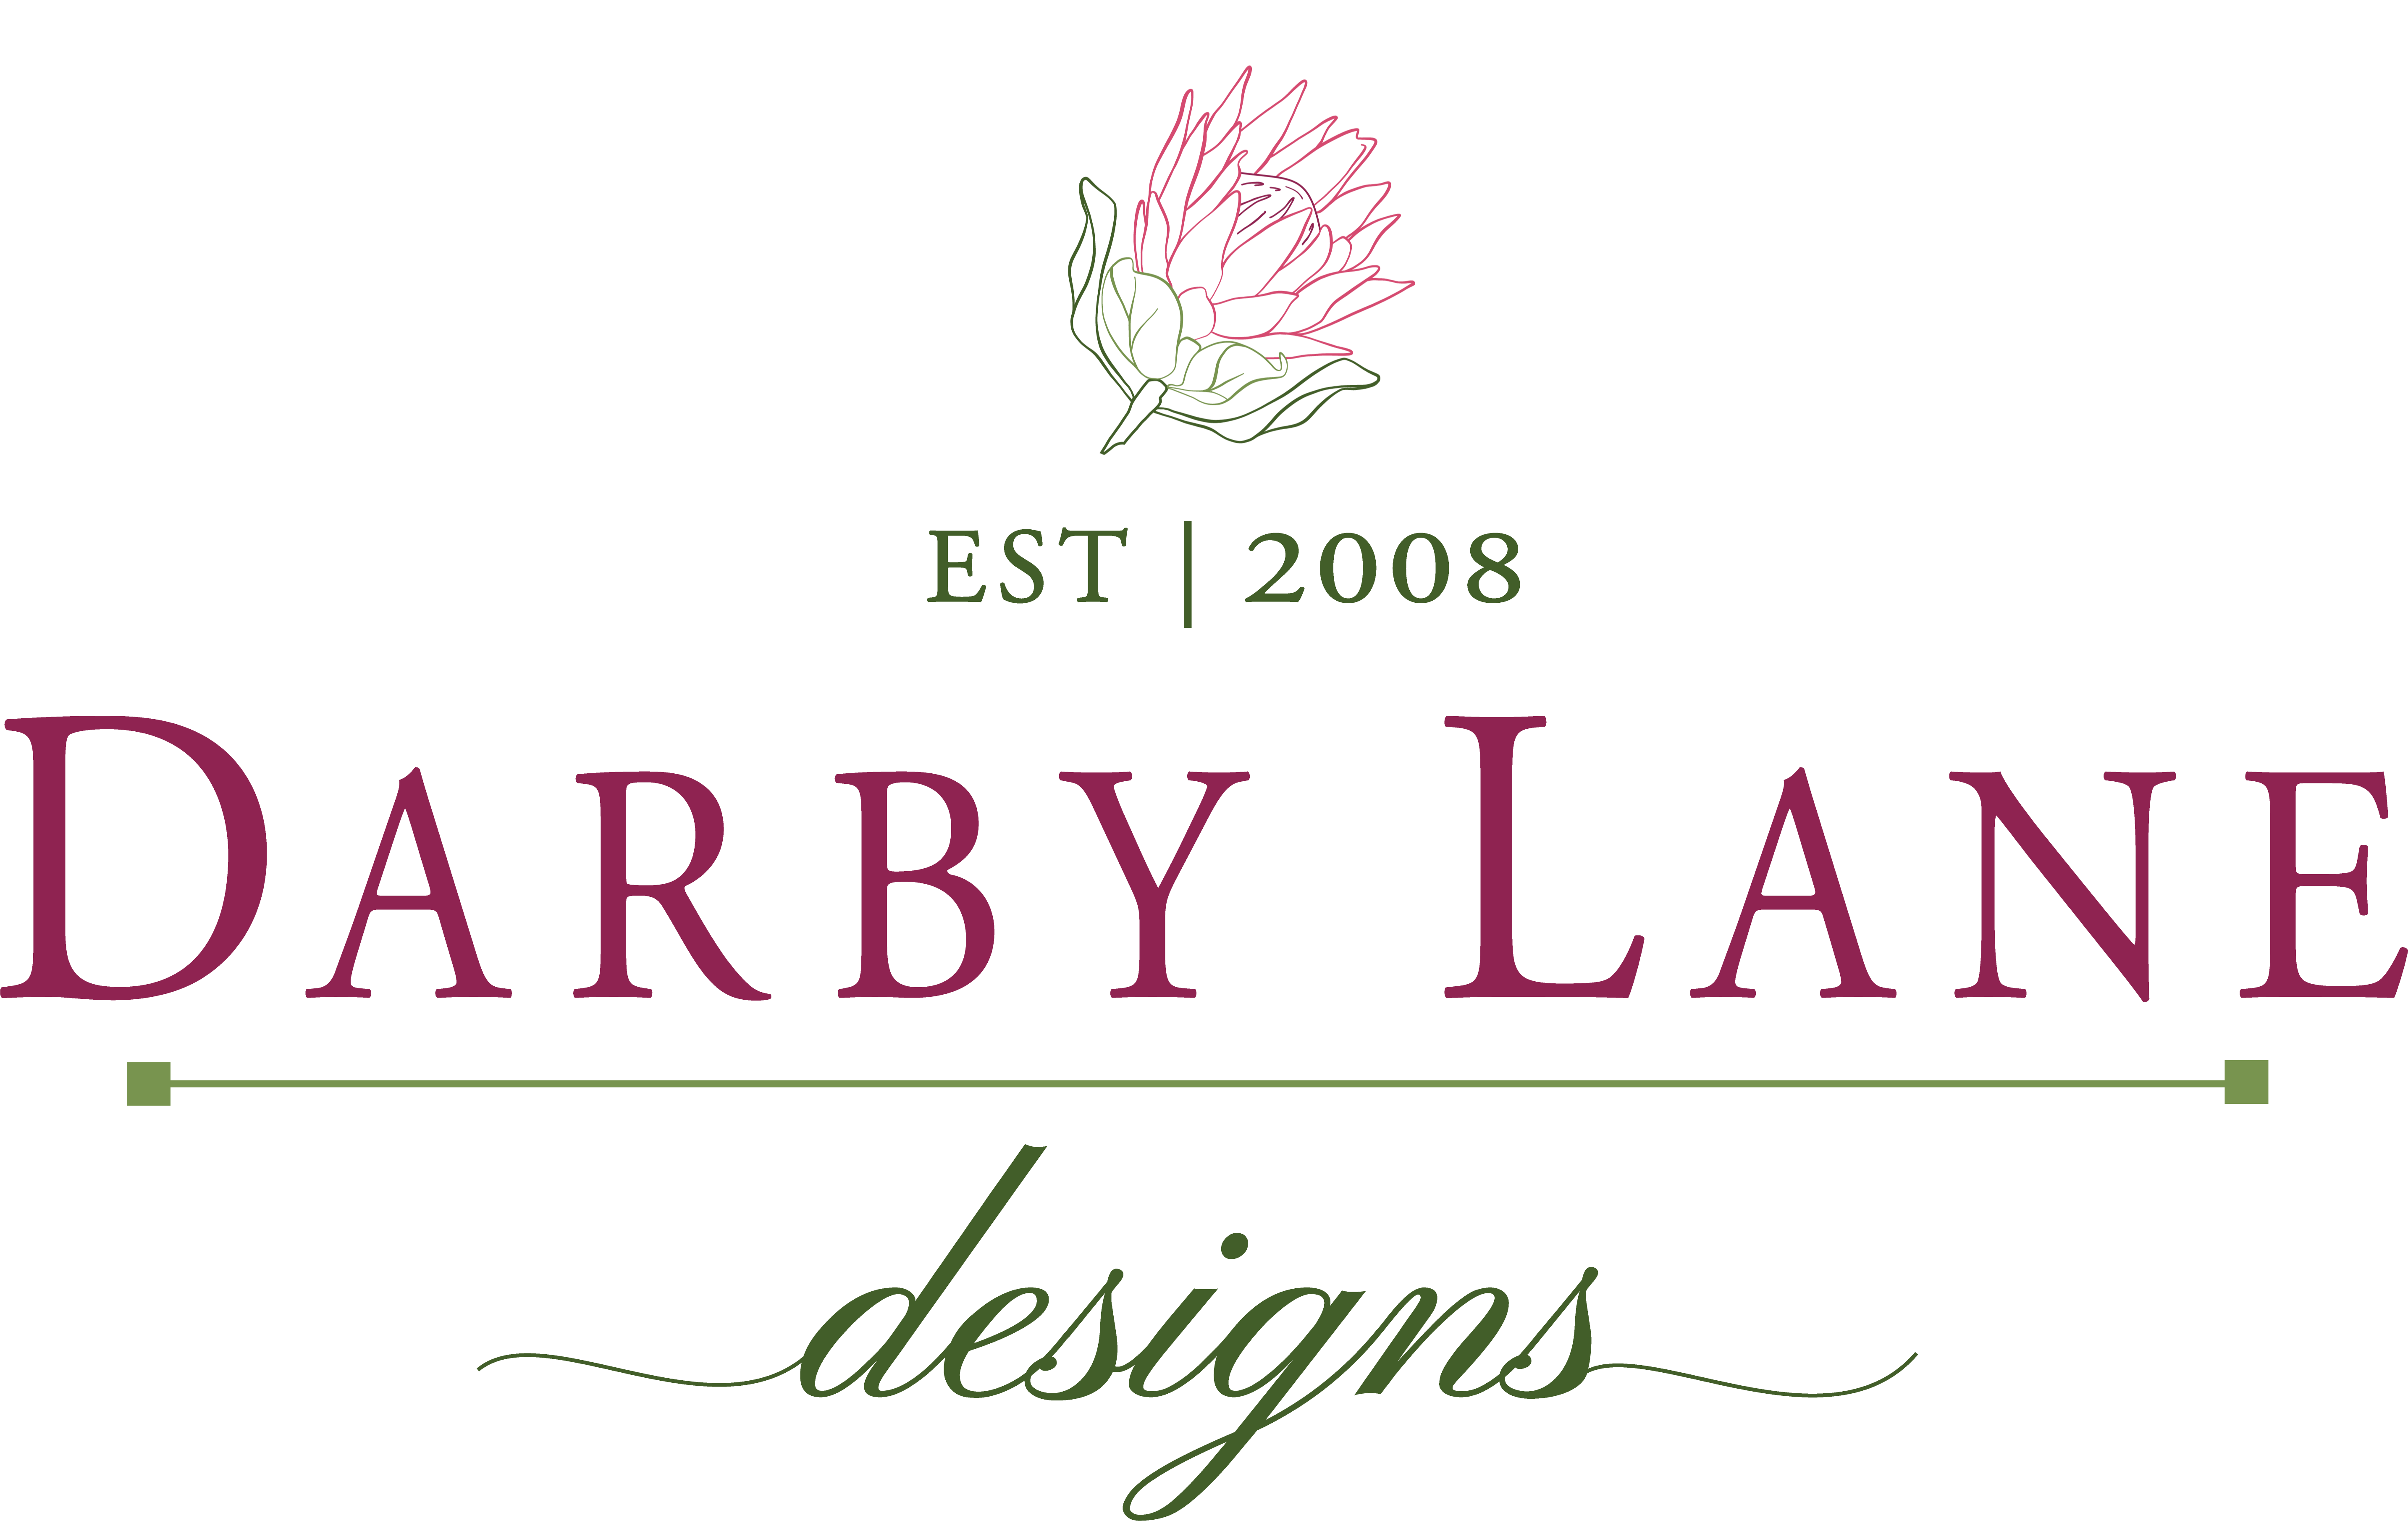 Darby Lane Designs